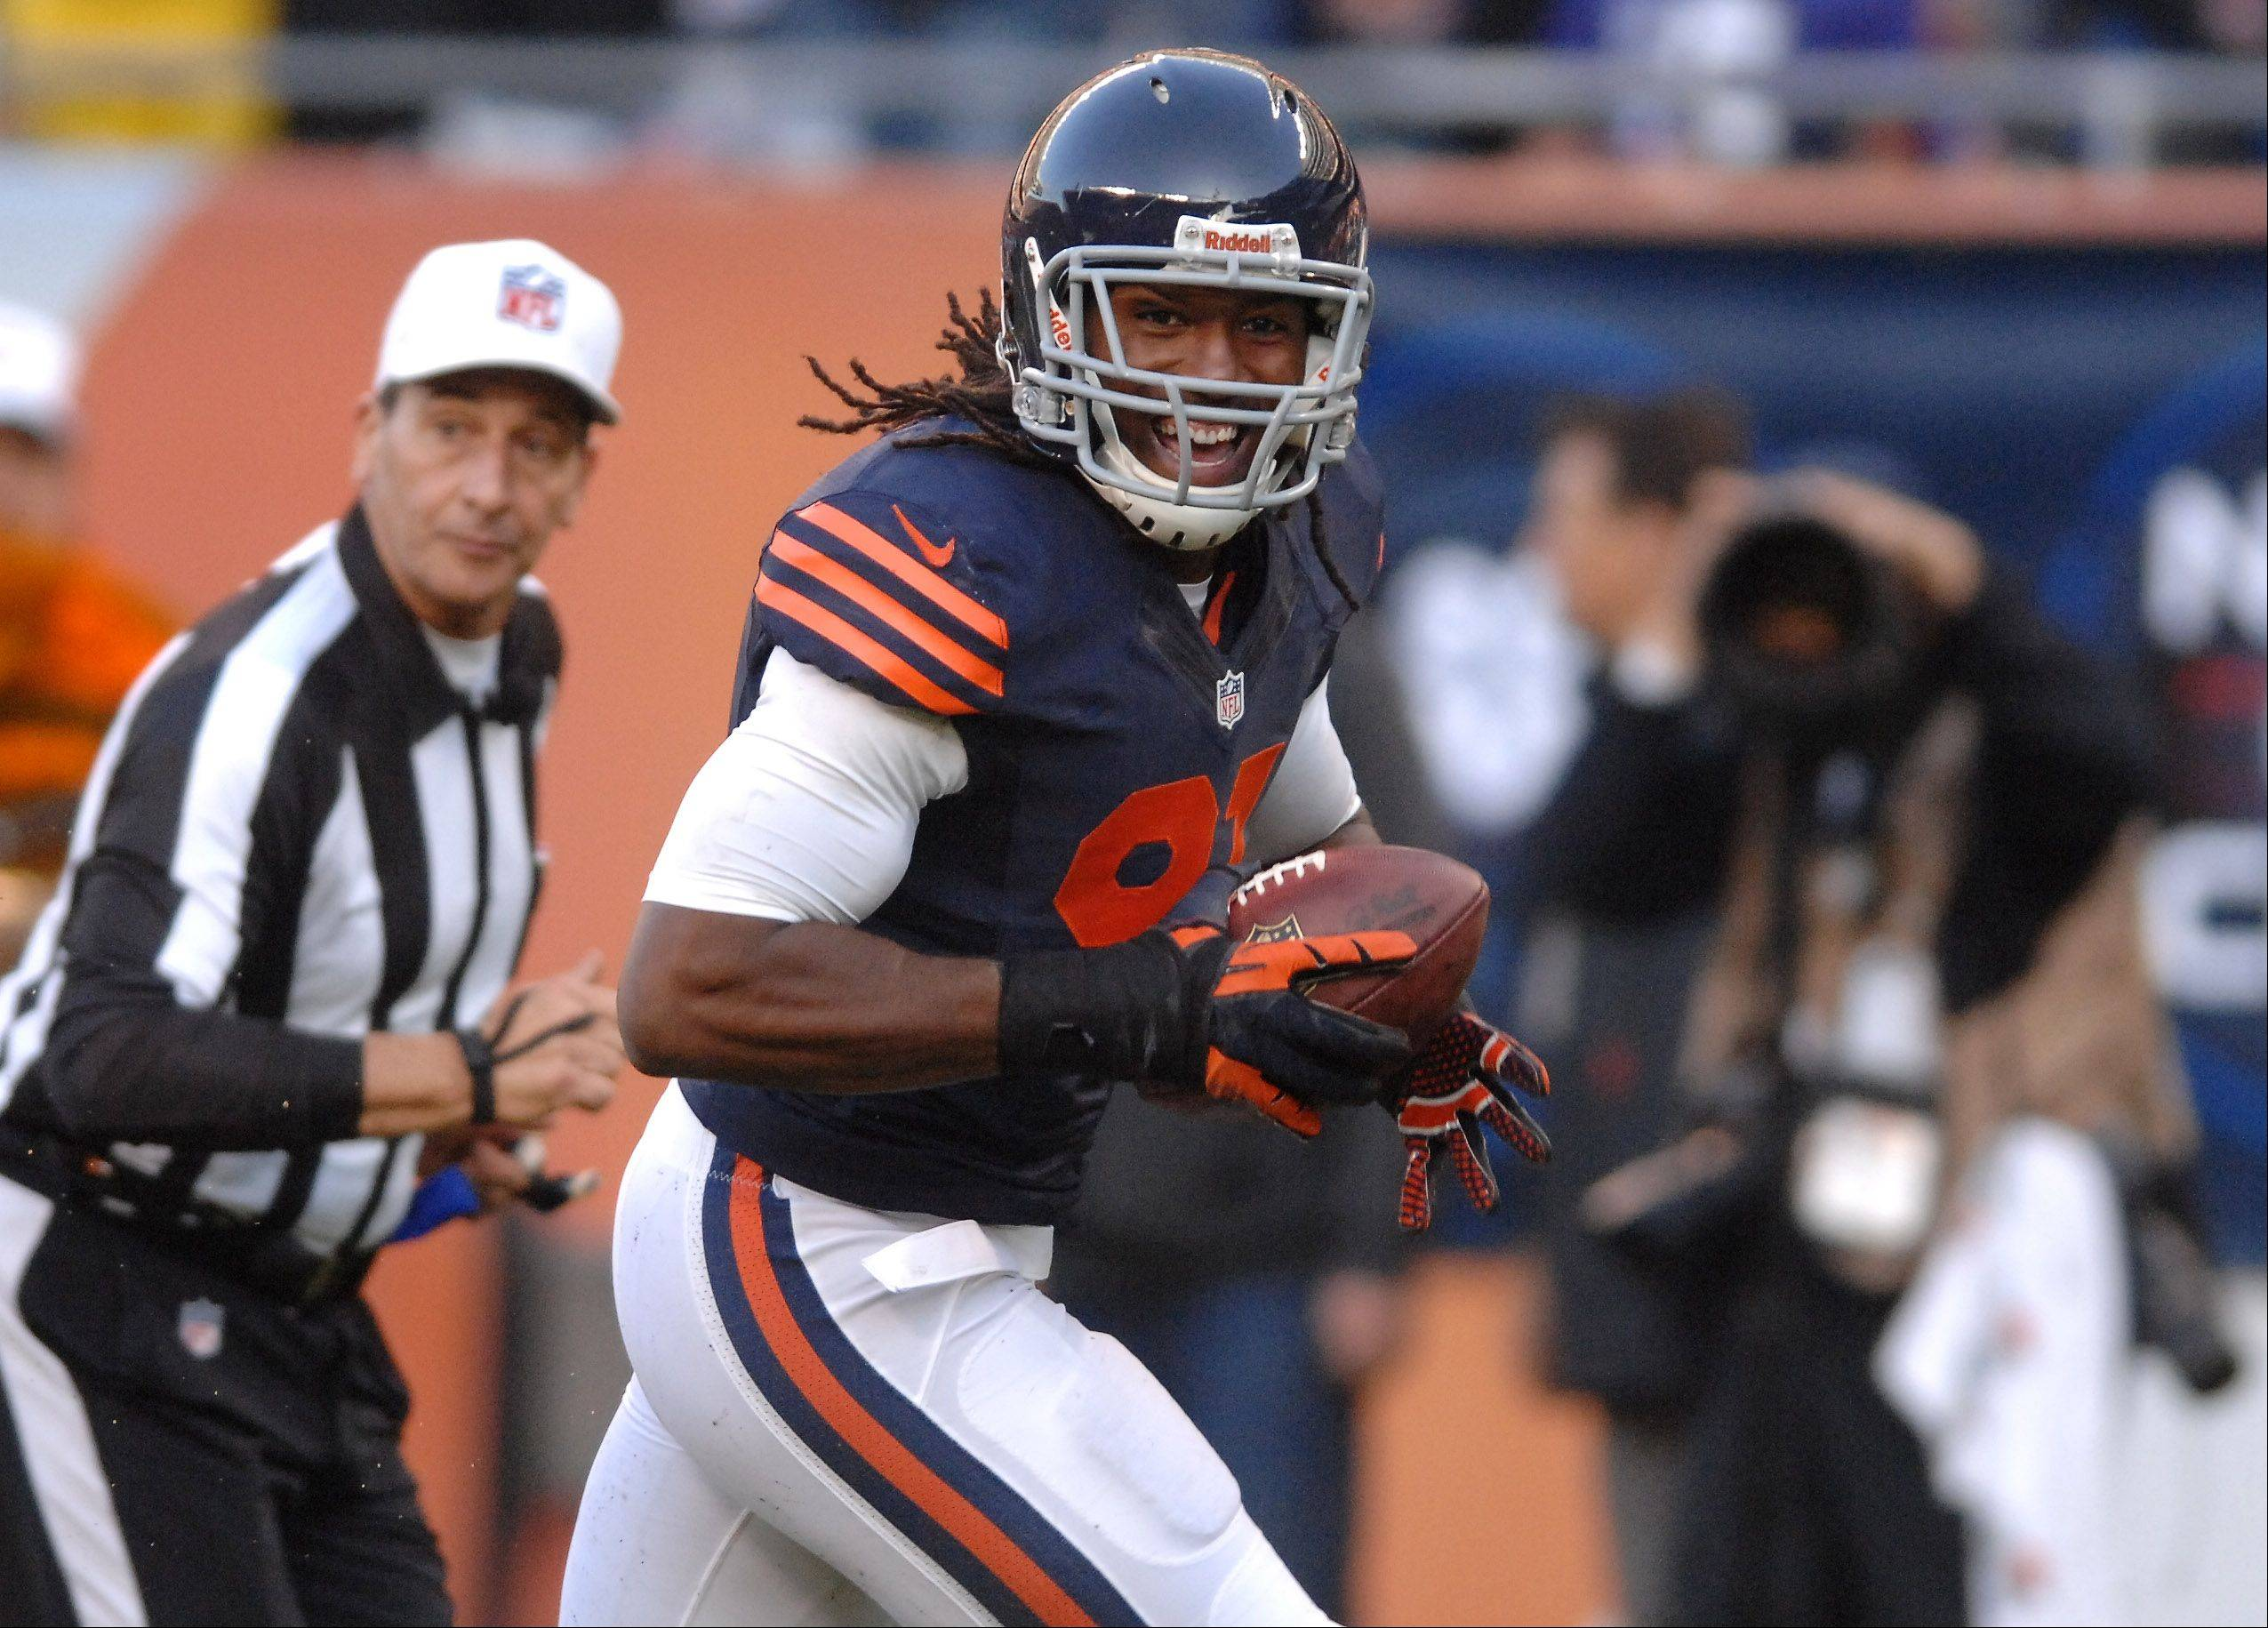 Chicago Bears defensive end David Bass (91) smiles as he runs untouched into the end zone after his interception during Sunday's game in Chicago.